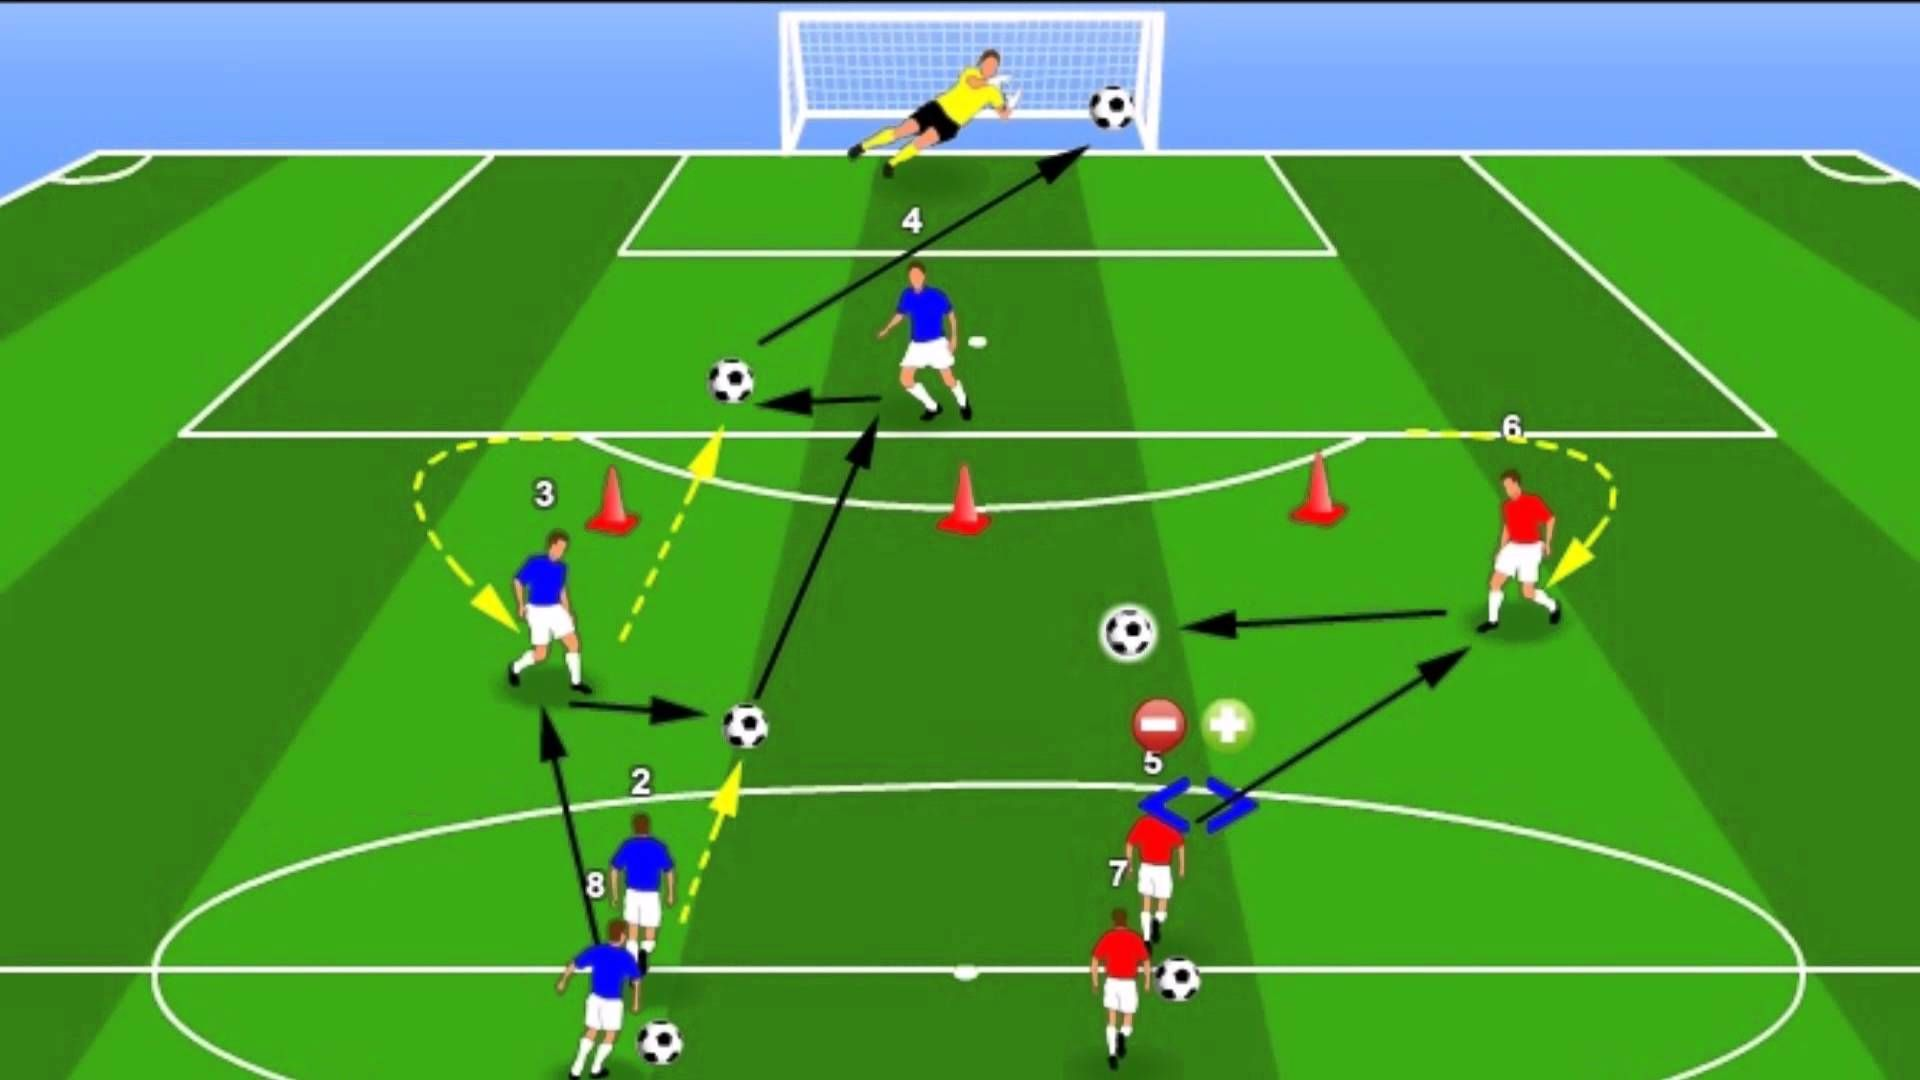 Soccer Drills For U10 U13 Age Coordination Agility Speed Power Shot Soccer Drills Football Training Drills Soccer